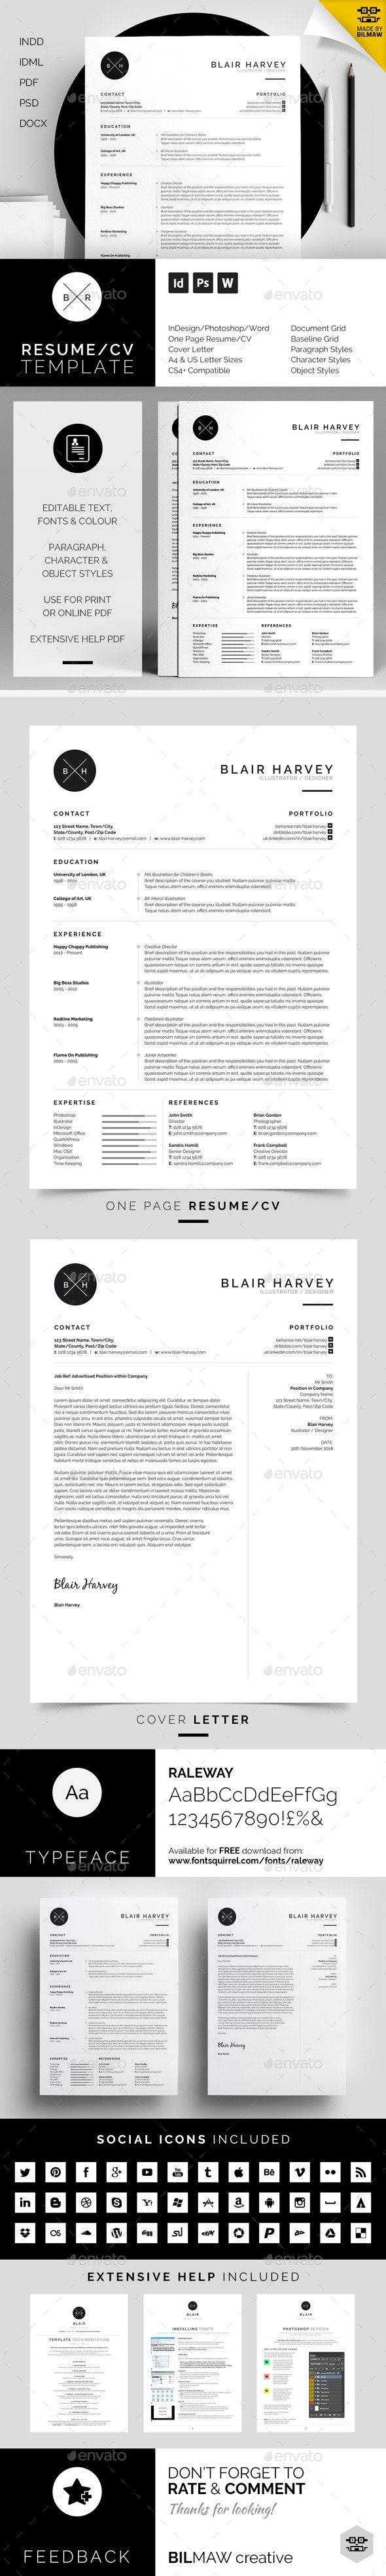 Resume/CV - Blair - Resumes Stationery